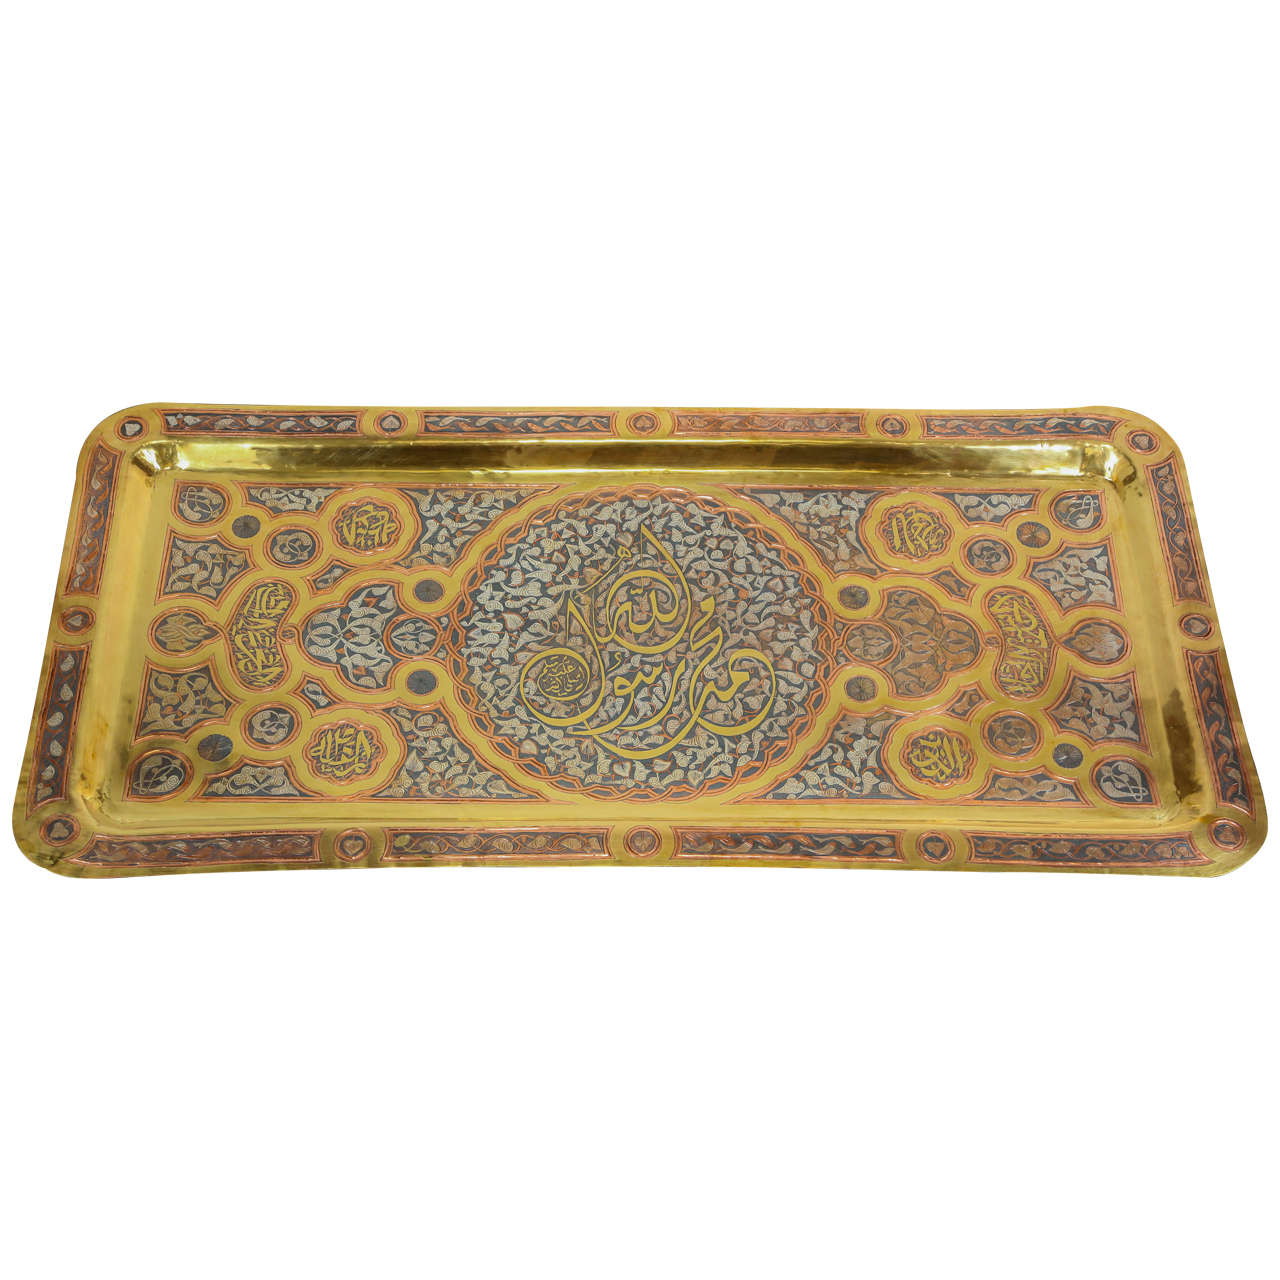 Middle Eastern Syrian Brass Tray Inlaid with Arabic Islamic Calligraphy